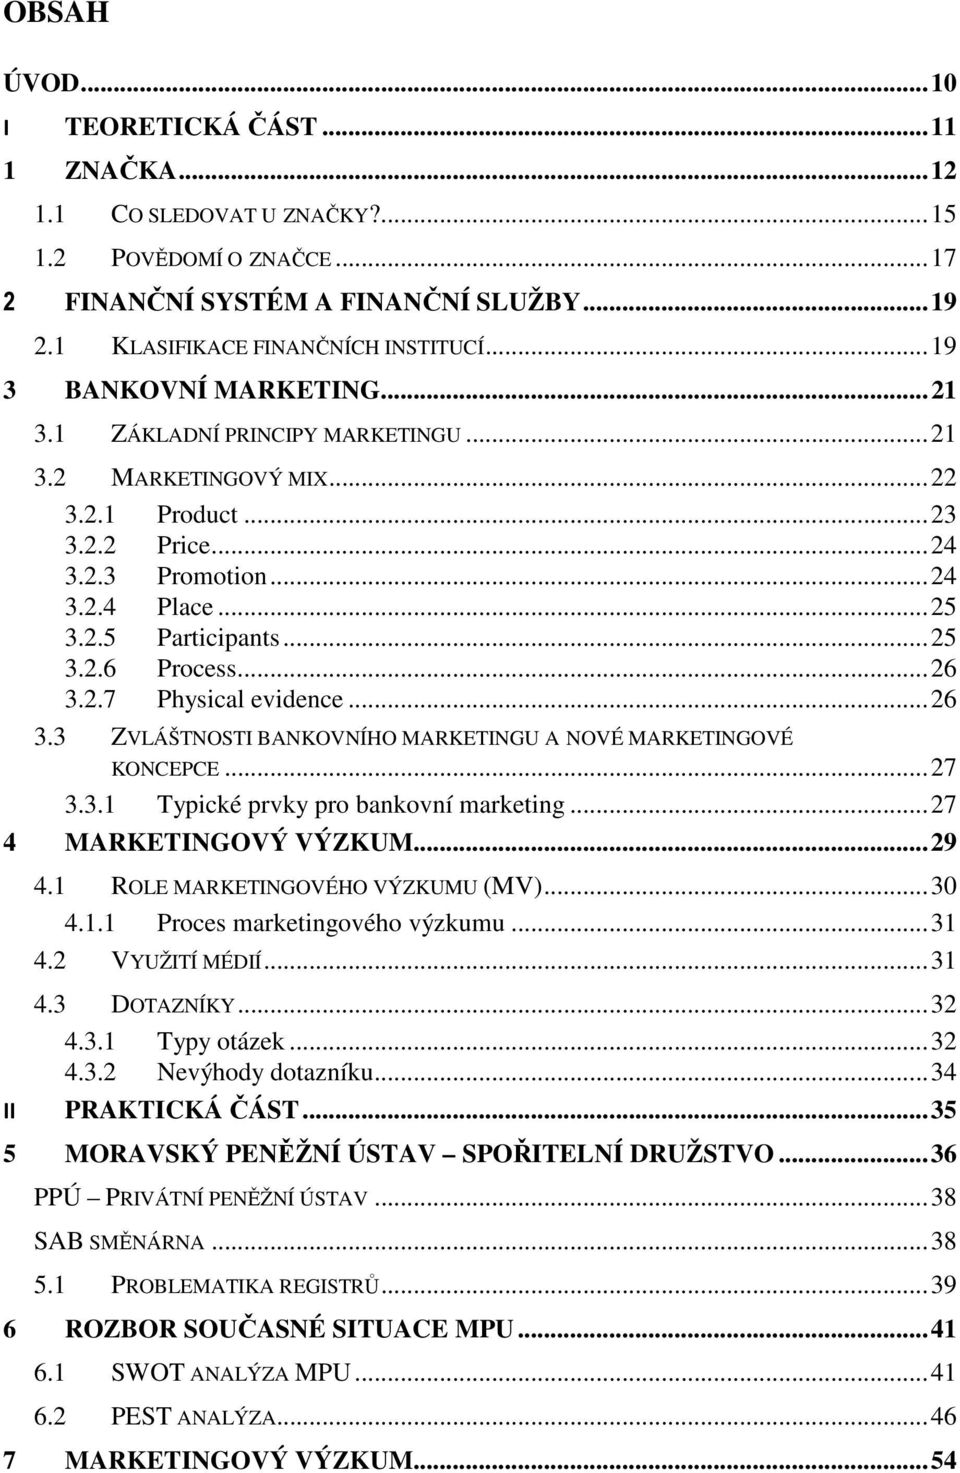 .. 25 3.2.6 Process... 26 3.2.7 Physical evidence... 26 3.3 ZVLÁŠTNOSTI BANKOVNÍHO MARKETINGU A NOVÉ MARKETINGOVÉ KONCEPCE... 27 3.3.1 Typické prvky pro bankovní marketing... 27 4 MARKETINGOVÝ VÝZKUM.